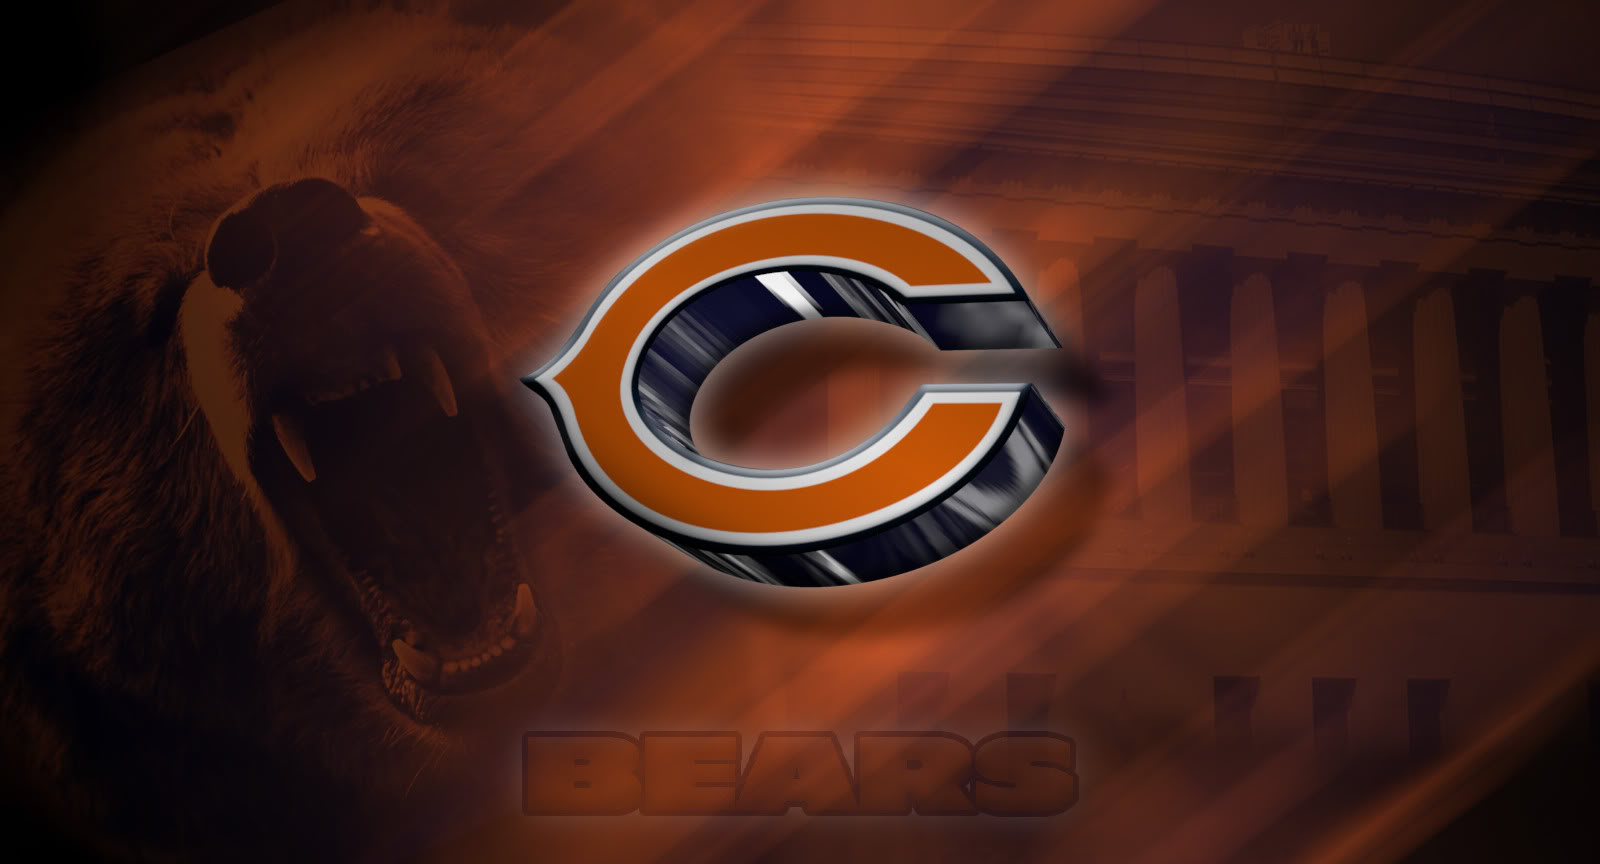 Chicago Bears Soldier Field Wallpaper 1600x864 Full HD Wallpapers 1600x864